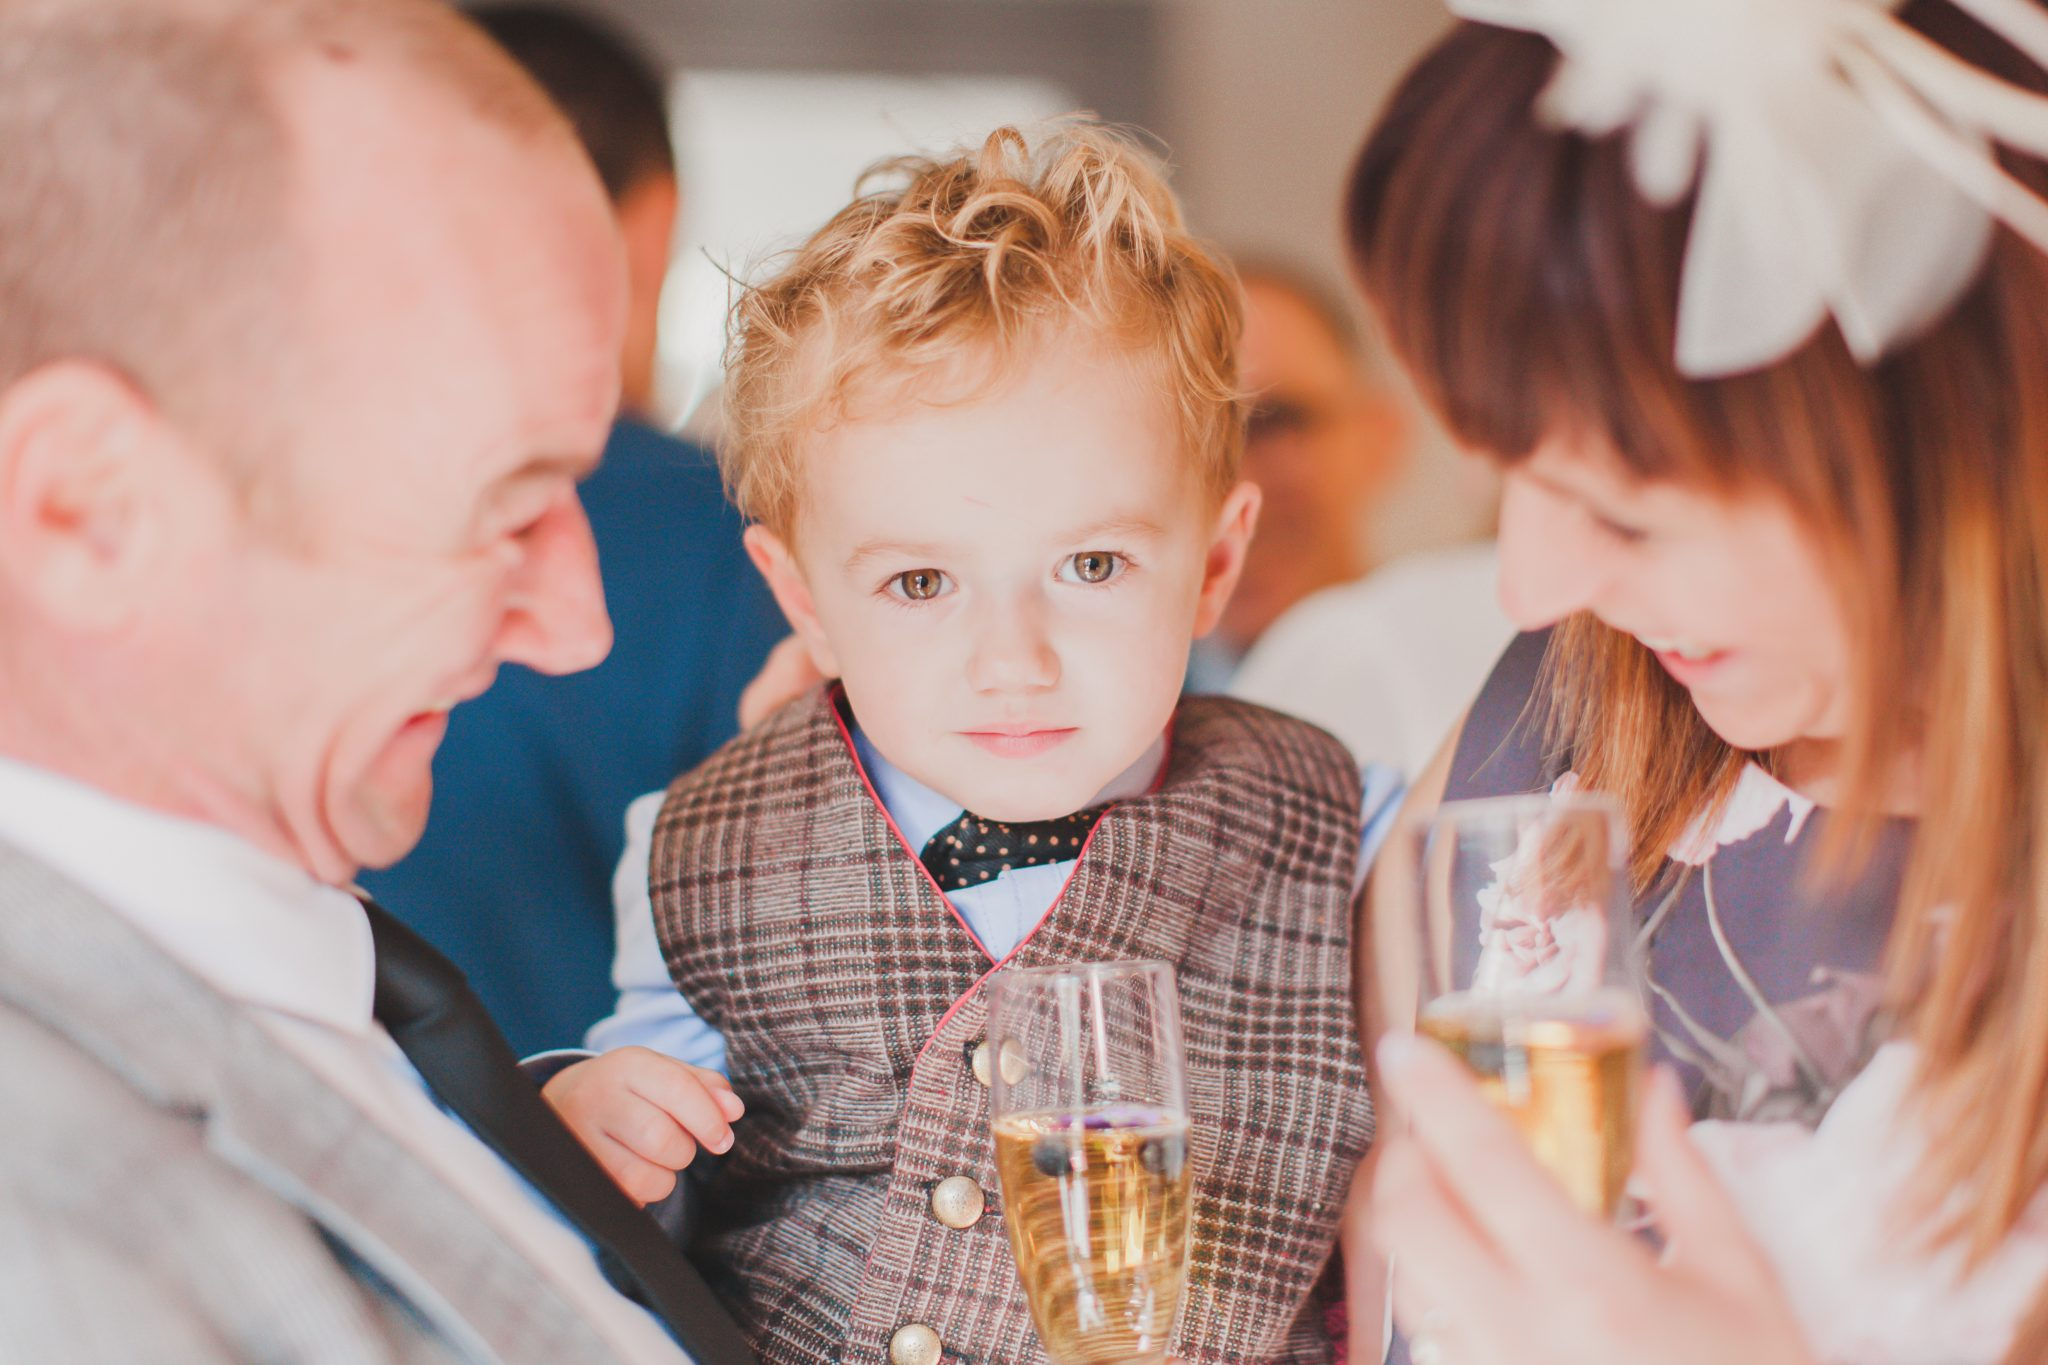 Little boy at wedding with bow tie